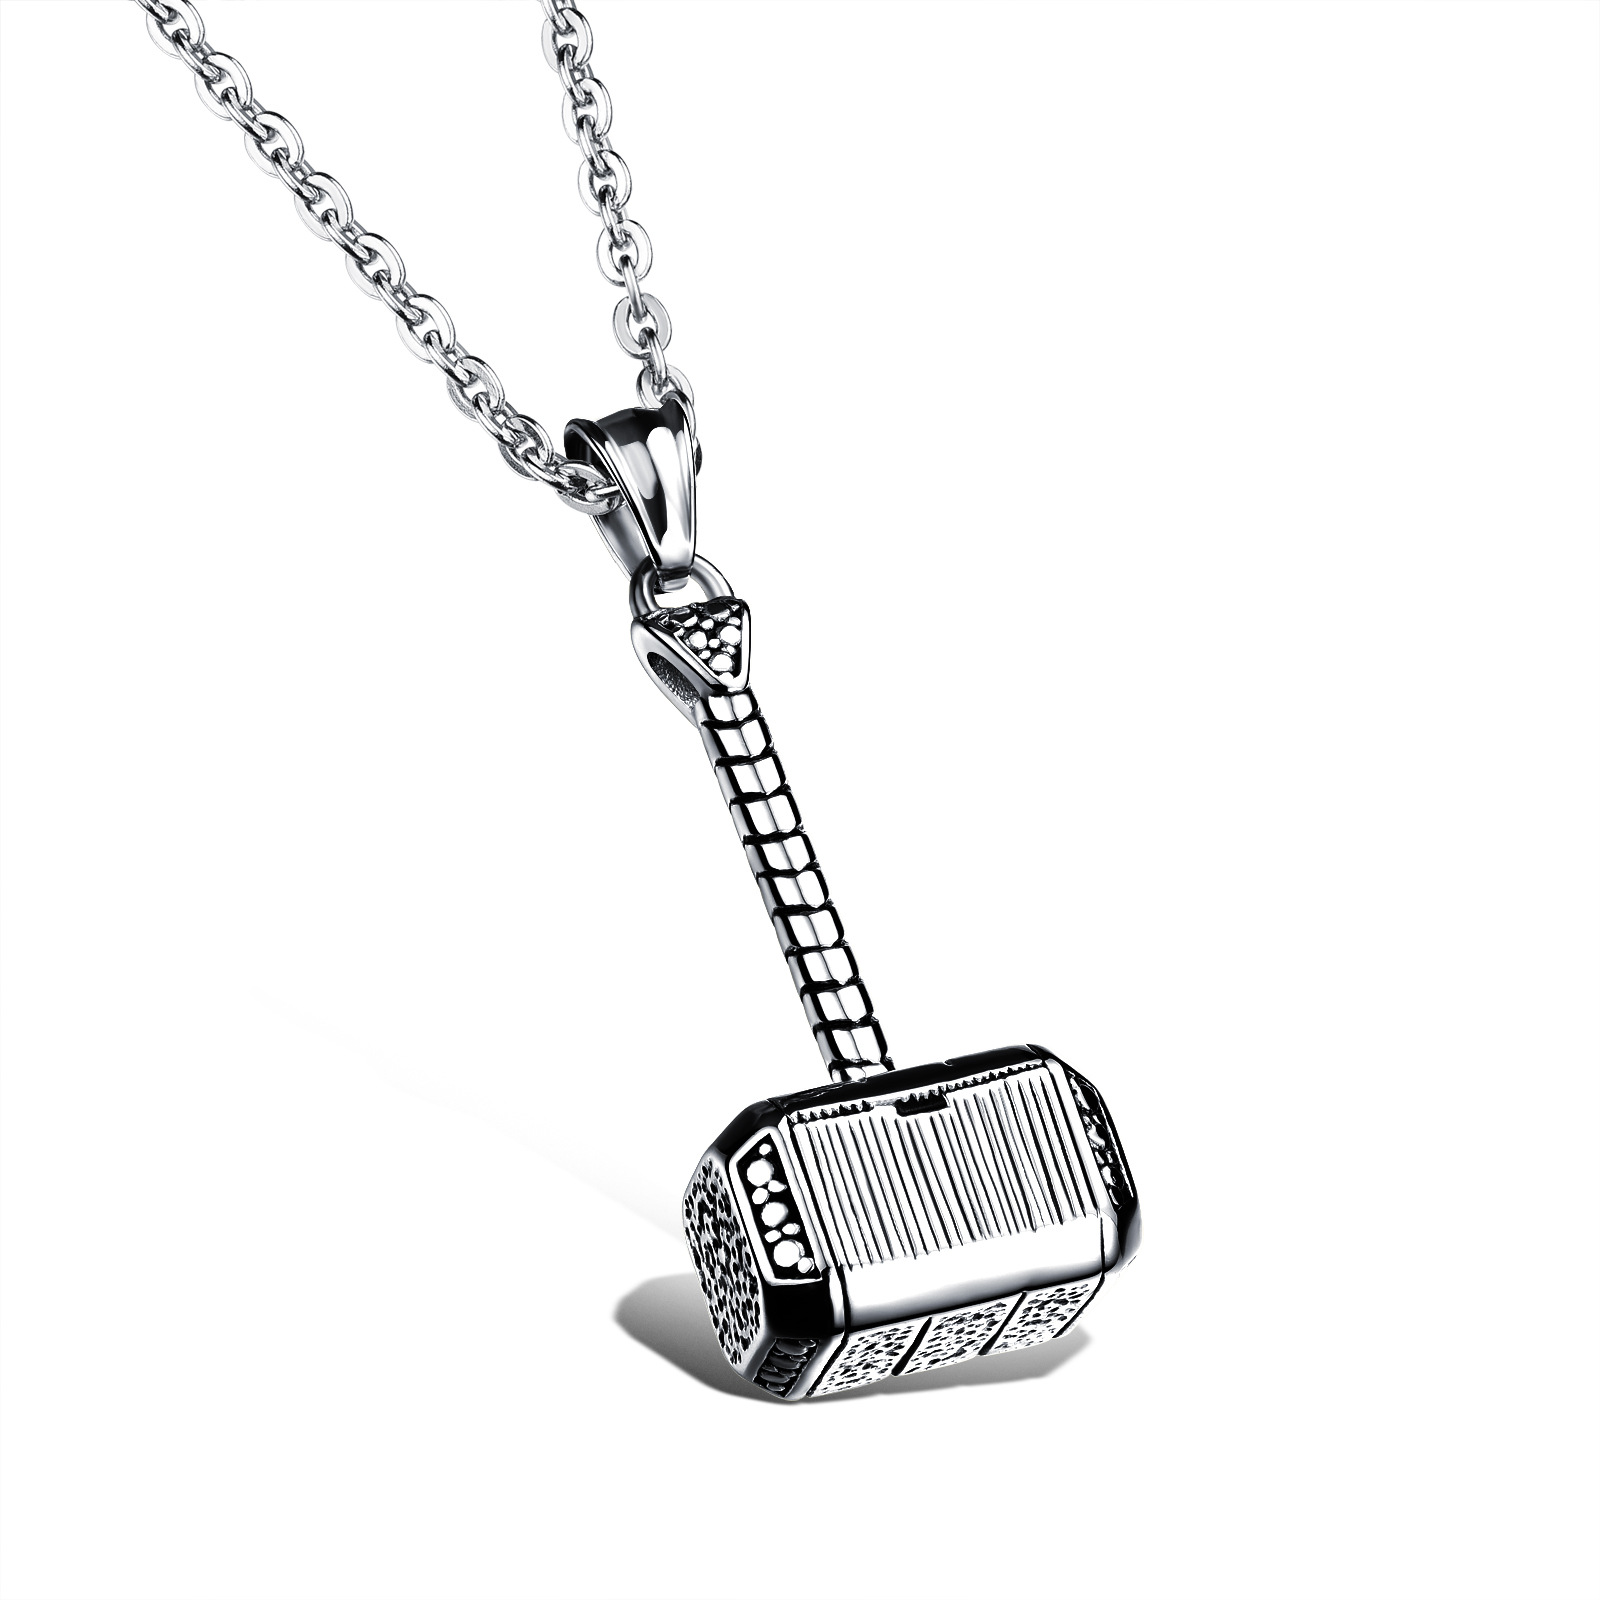 Details about Men Thor Hammer Charm Pendant Stainless Steel Fashion Lovers Chain  Necklace 8b8a23cc7992